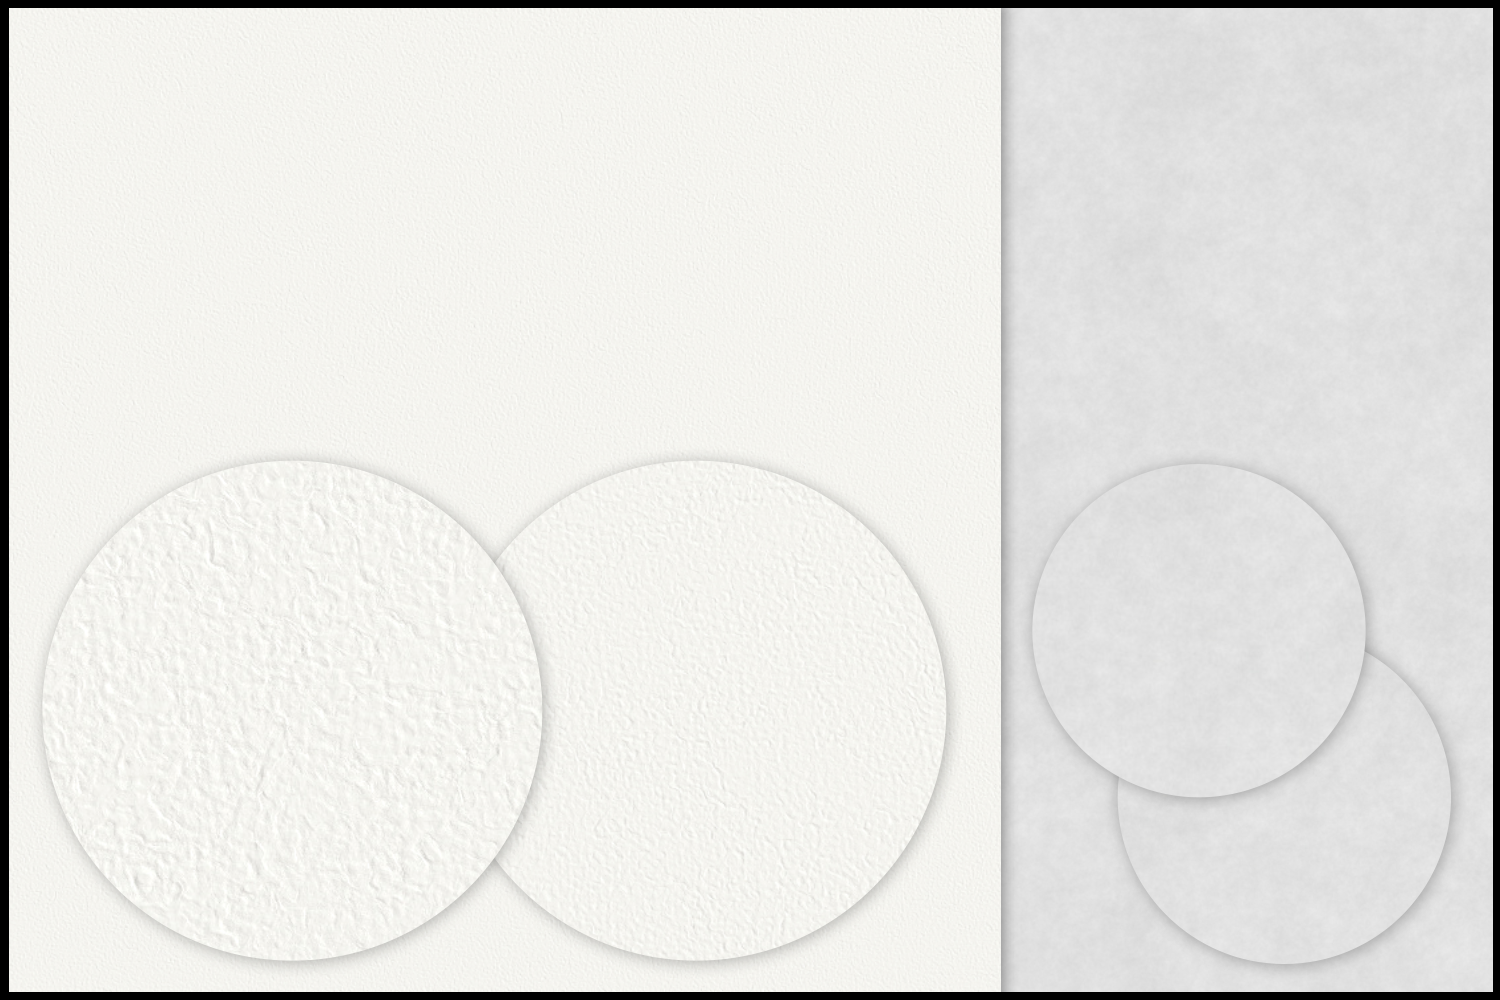 Download Free Paper Textures Backgrounds Graphic By Juliecampbelldesigns Creative Fabrica for Cricut Explore, Silhouette and other cutting machines.